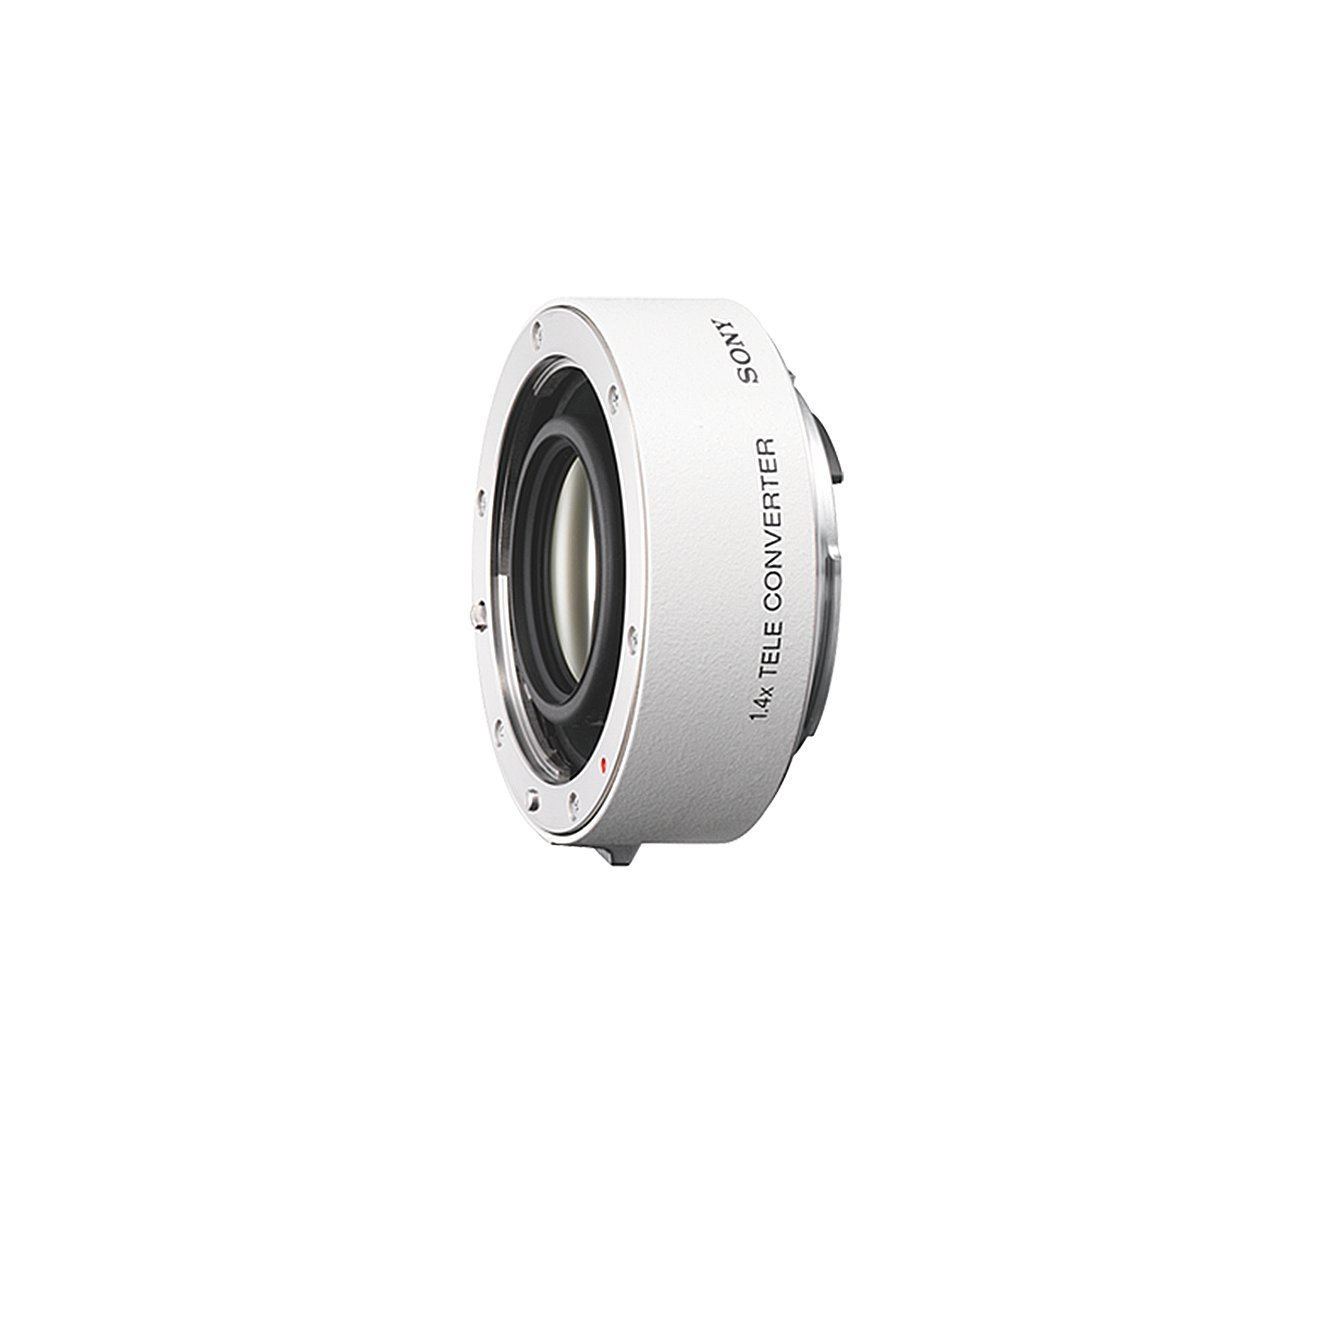 Cheap Sony Lens Case Find Deals On Line At Alibabacom Alpha A7rii Body Only Sel1635z Get Quotations Sal 14tc 14x Teleconverter For International Version No Warranty